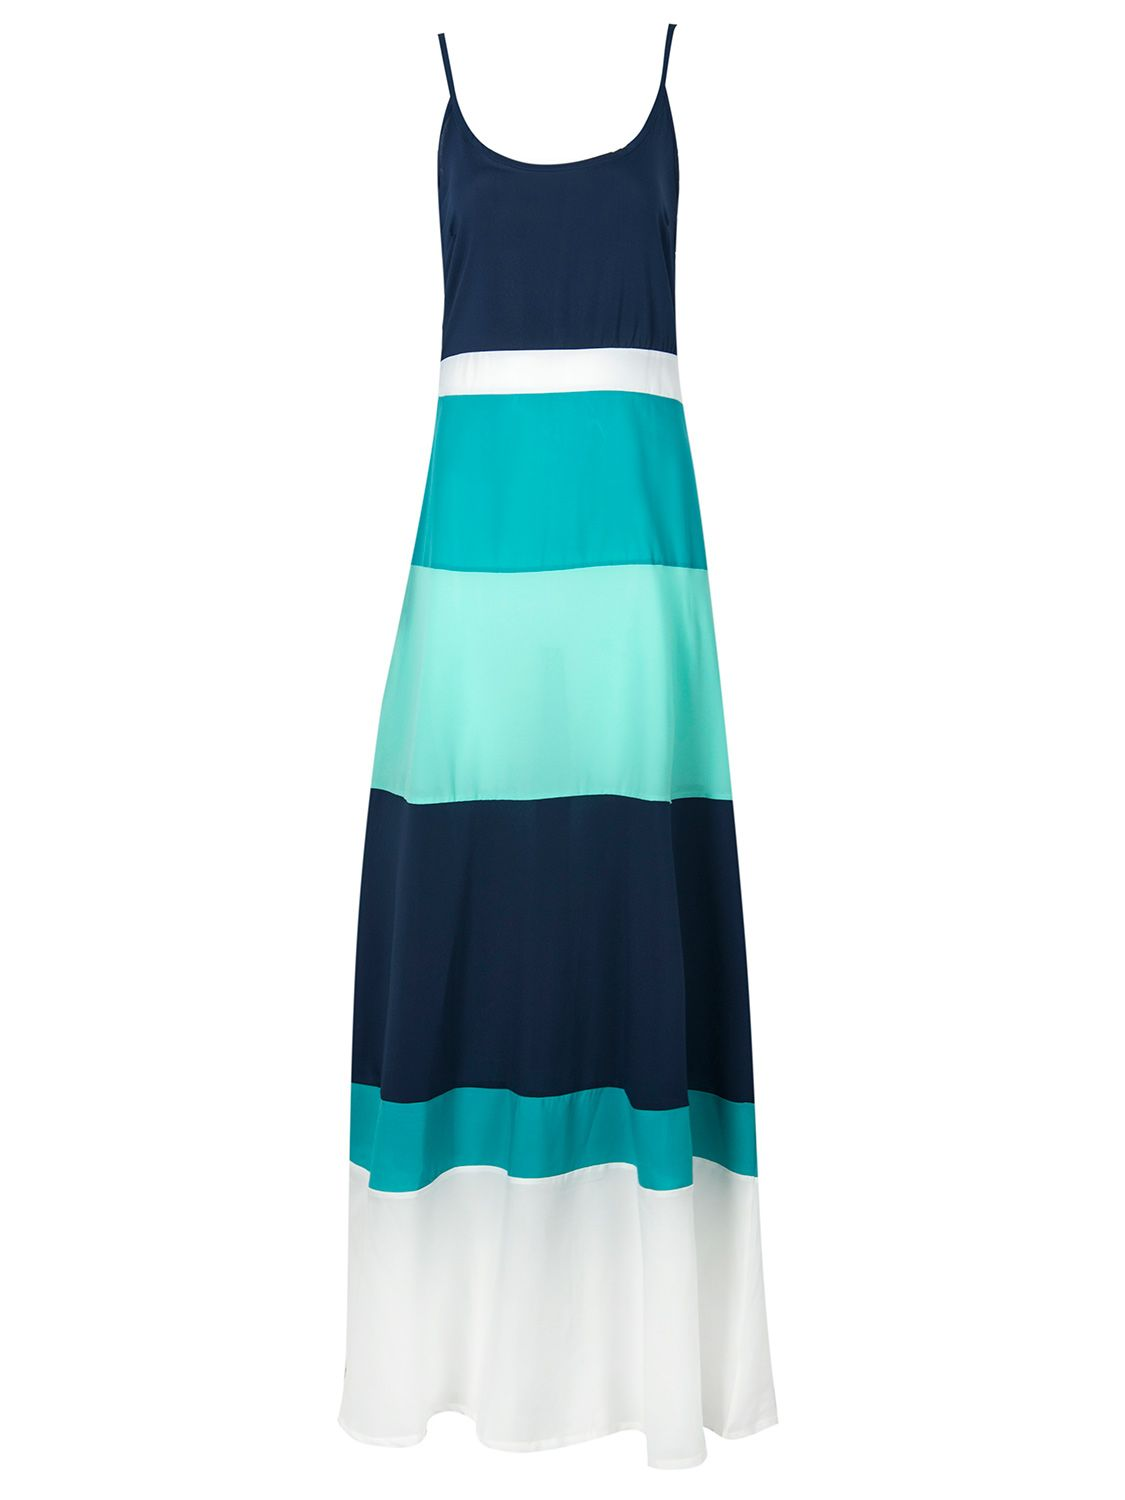 Teal Blue Contrast Color Spaghetti Strap Maxi Dress - Choies.com